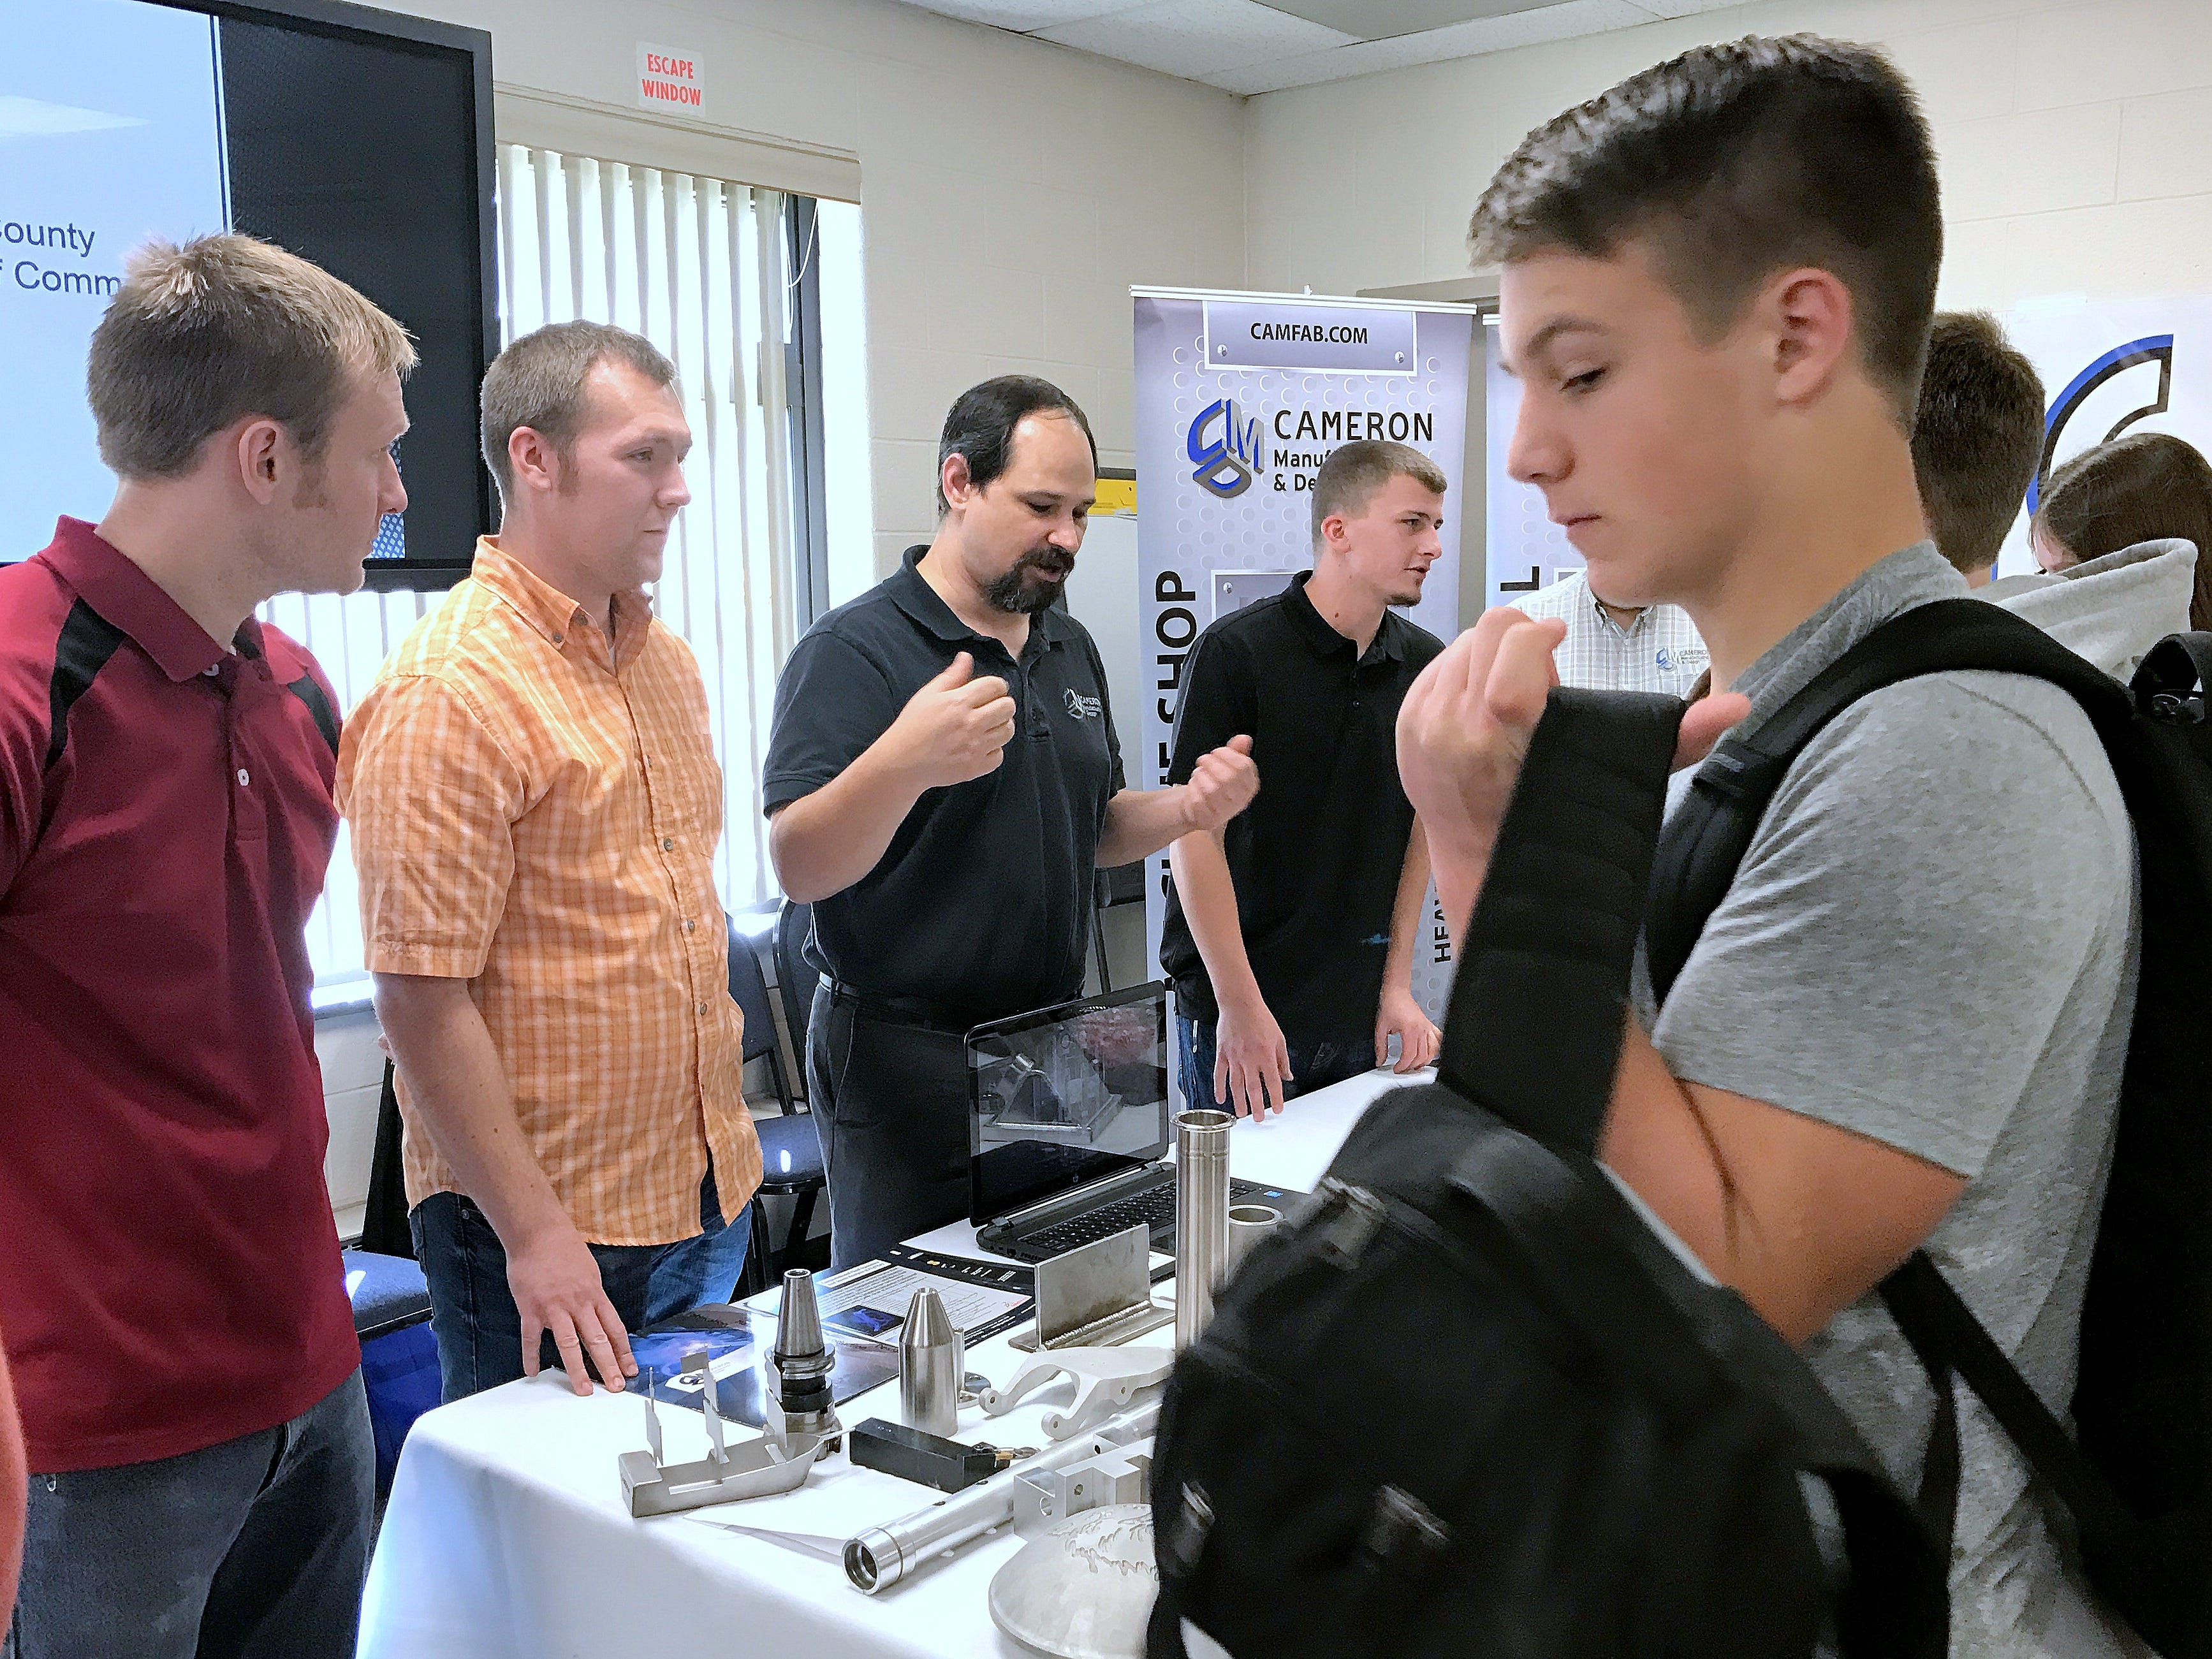 Representatives from Cameron Manufacturing talk with students about their products during Manufacturing Day on Friday at the Greater Southern Tier BOCES Bush Campus in Horseheads.